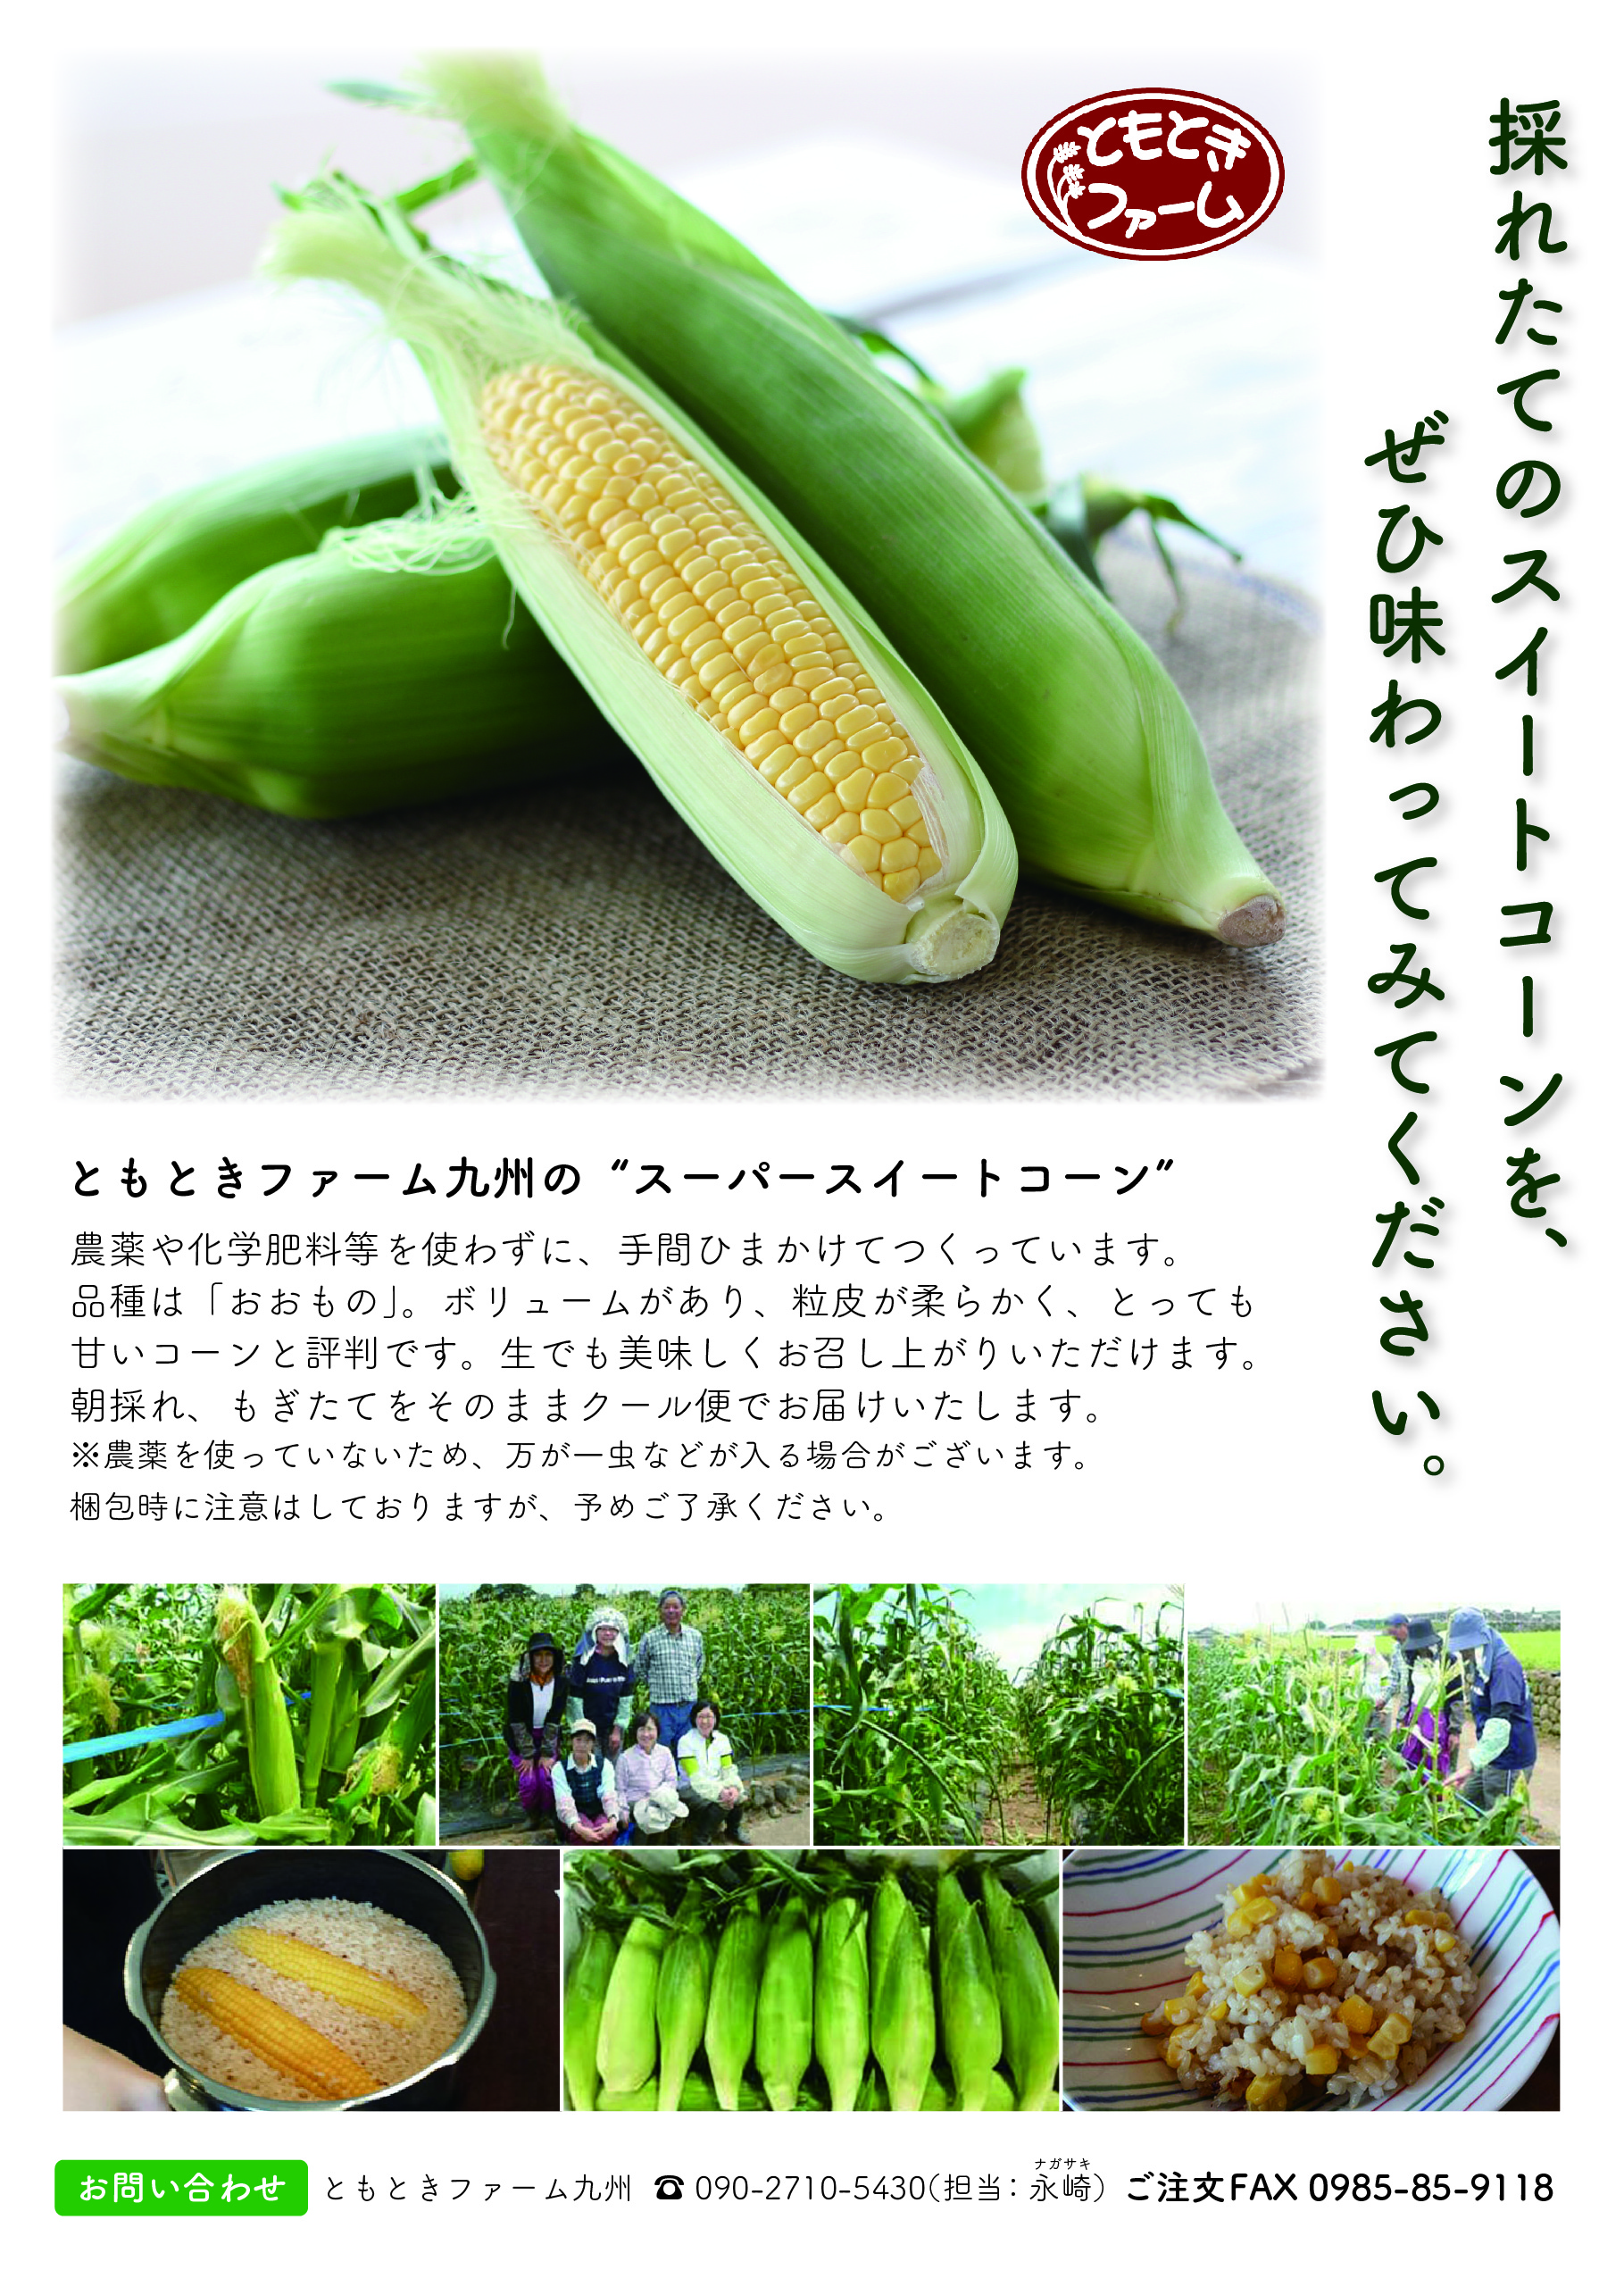 tomotoki_corn-02